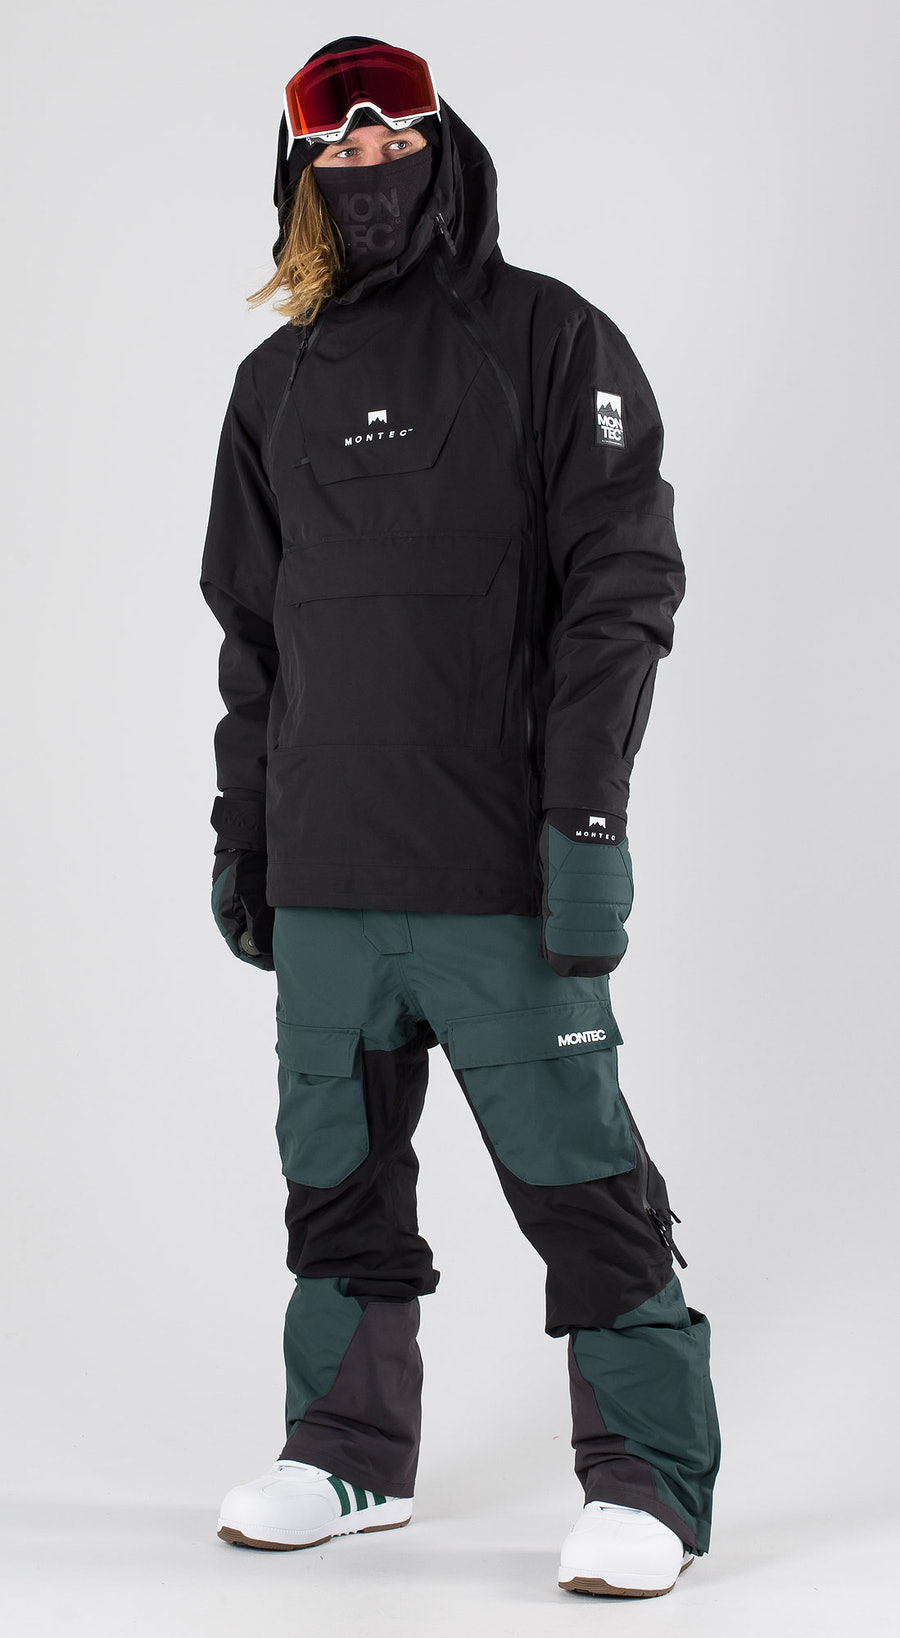 Montec Doom Black Snowboard clothing Multi